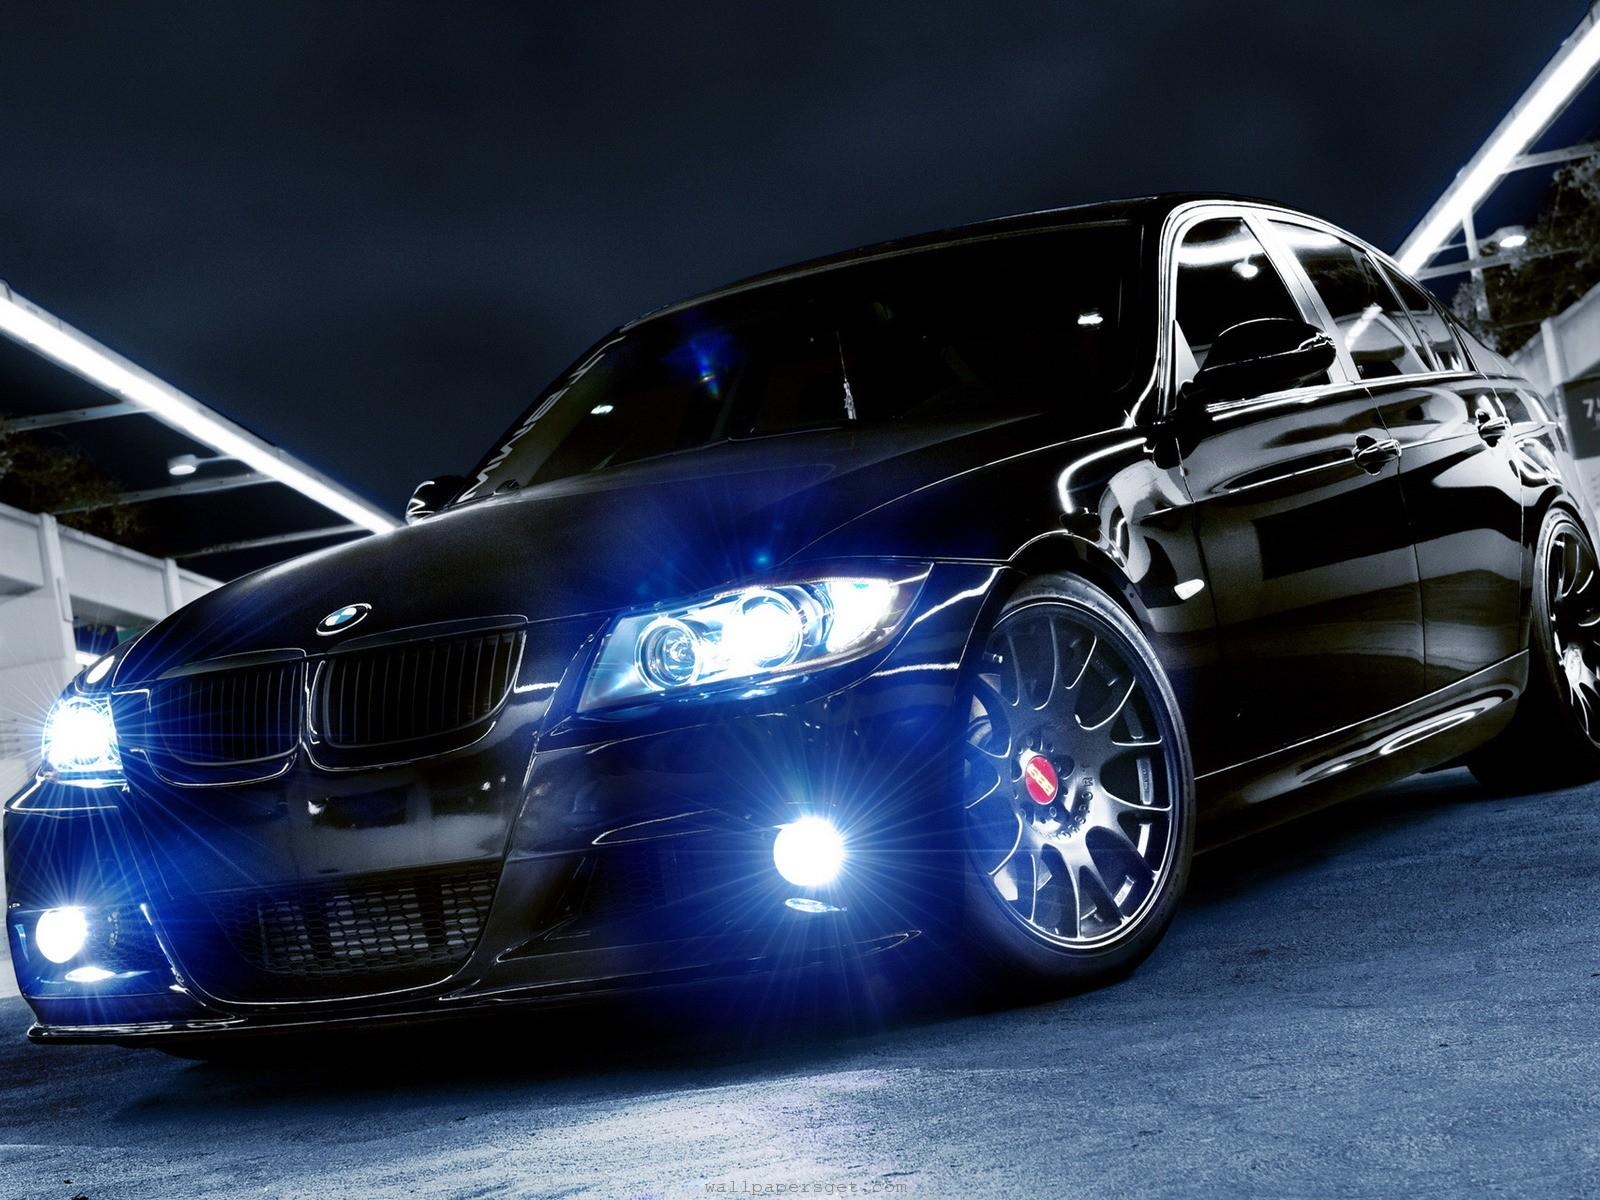 wallpapers hd for mac: BMW M3 Coupe Wallpaper HD